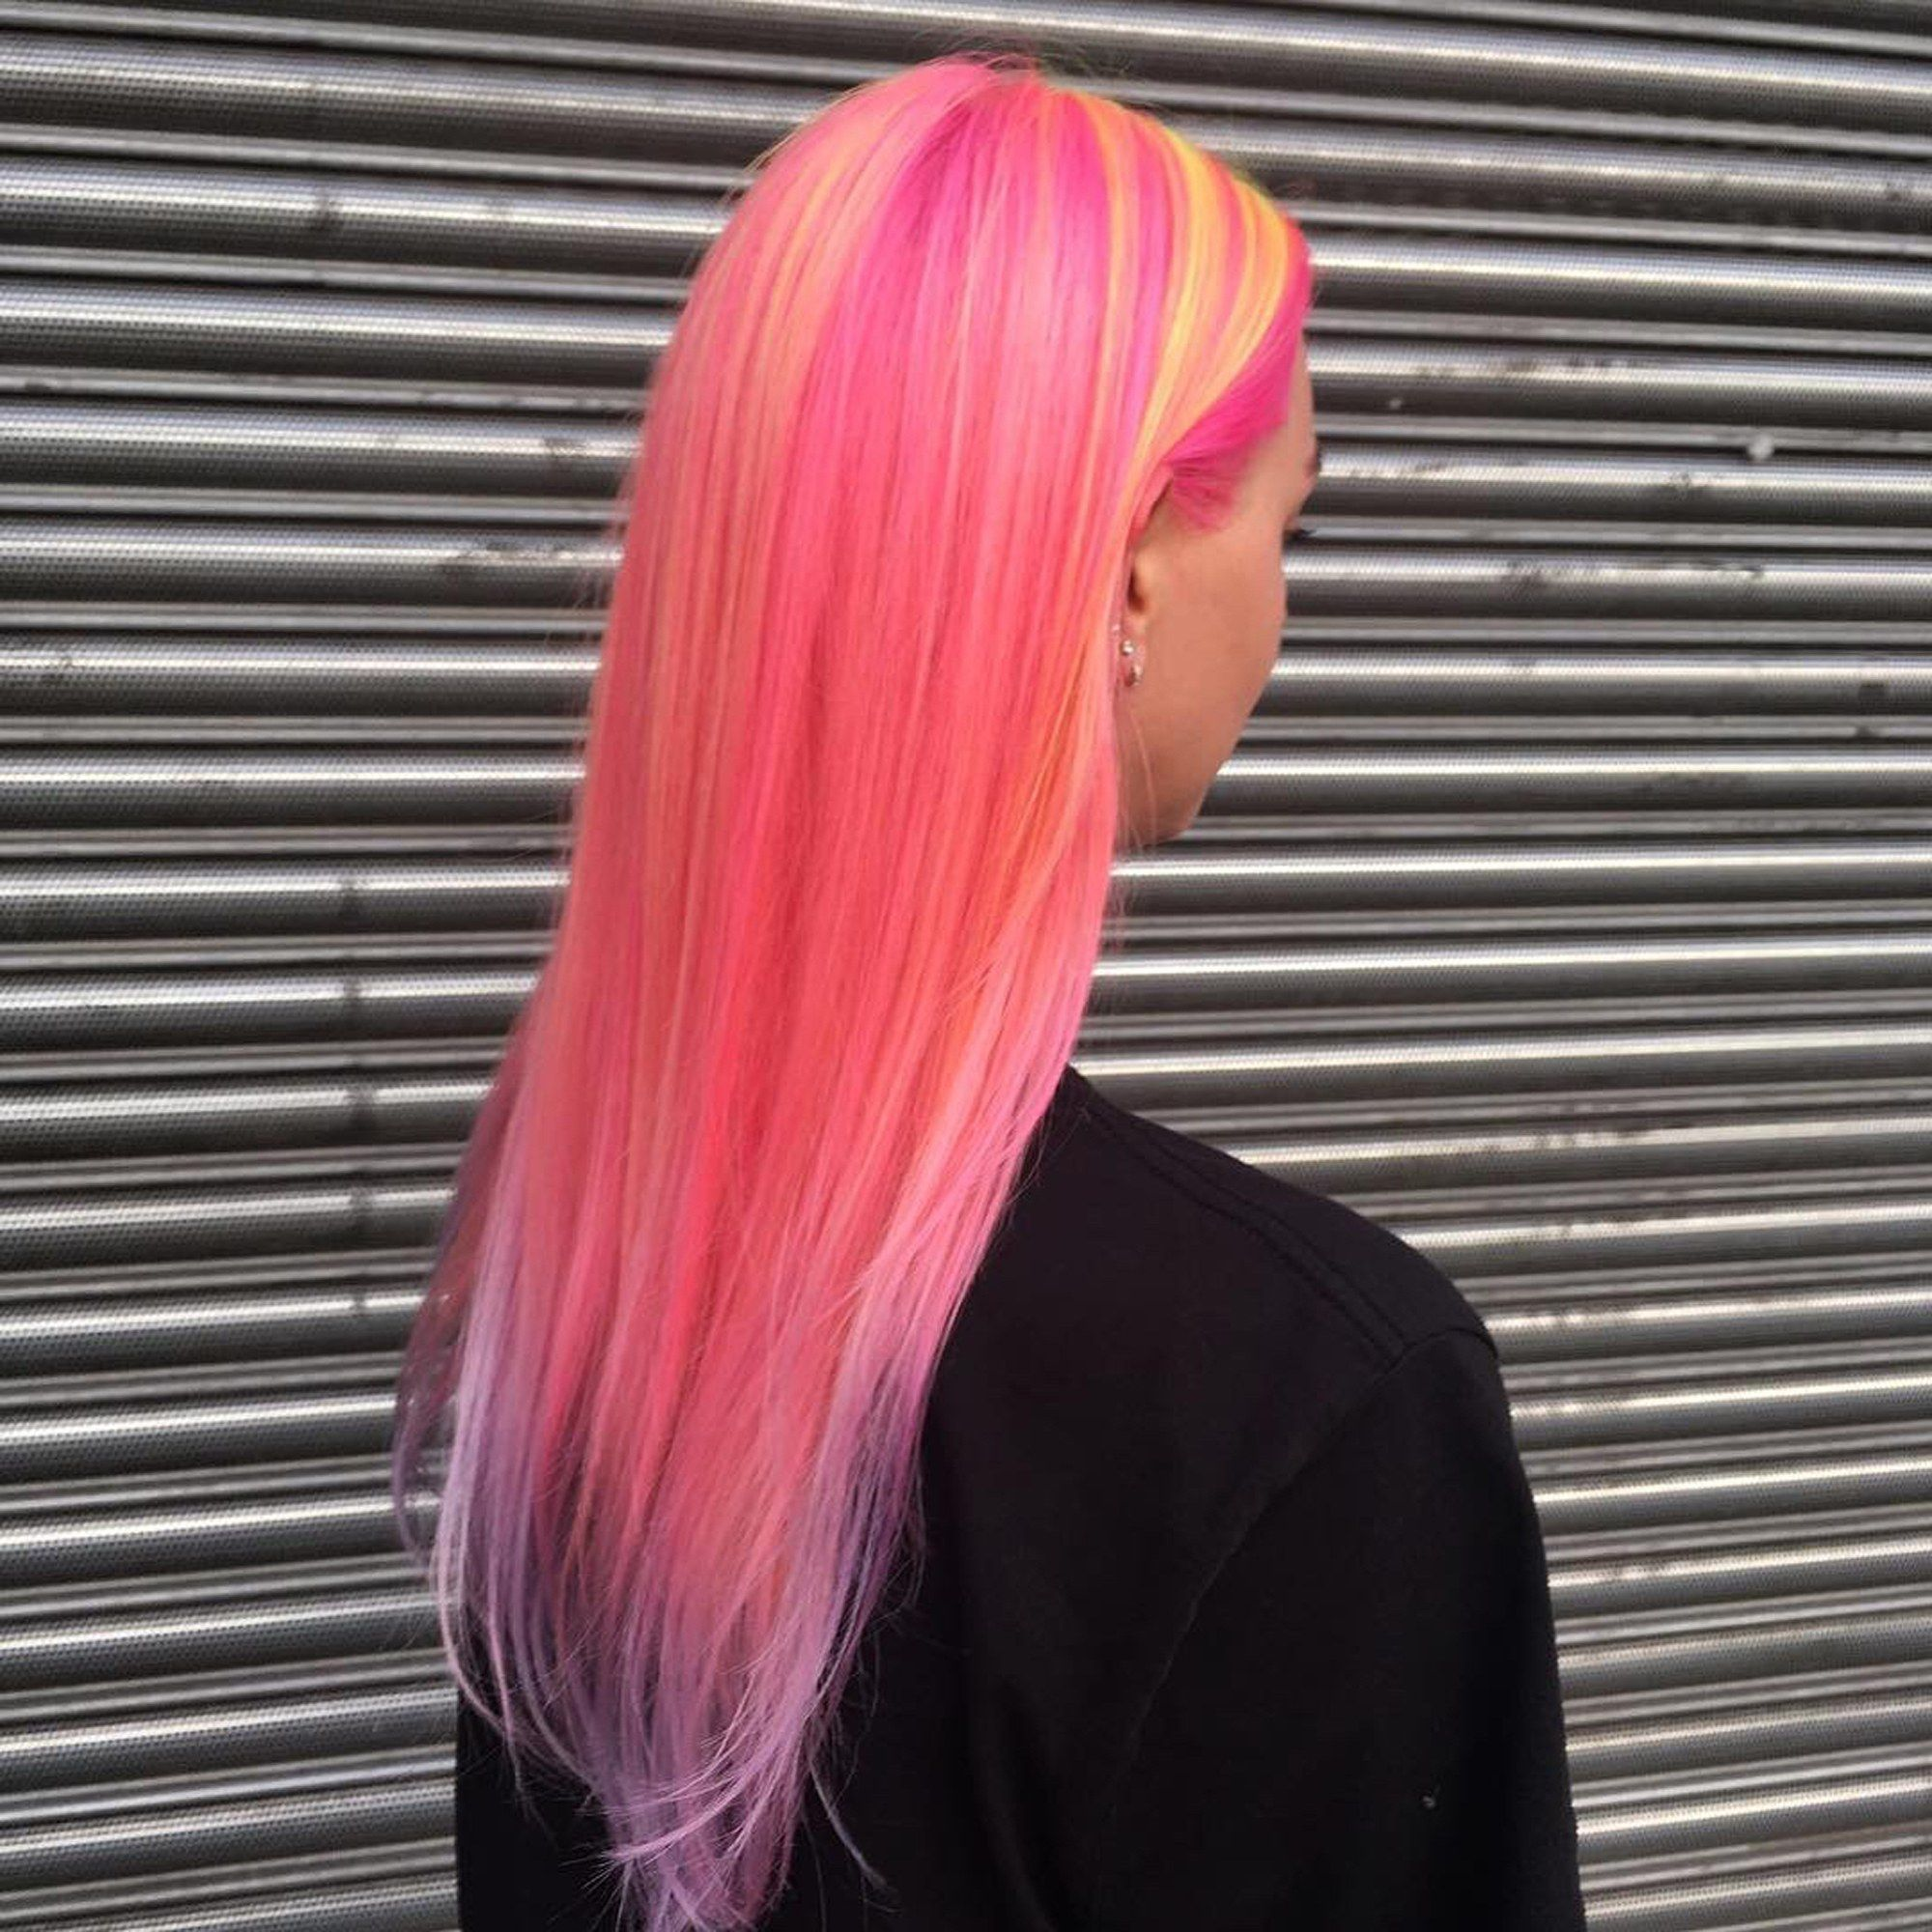 The 26 WILDEST Dye Jobs That Will Inspire Your Next Hair ...